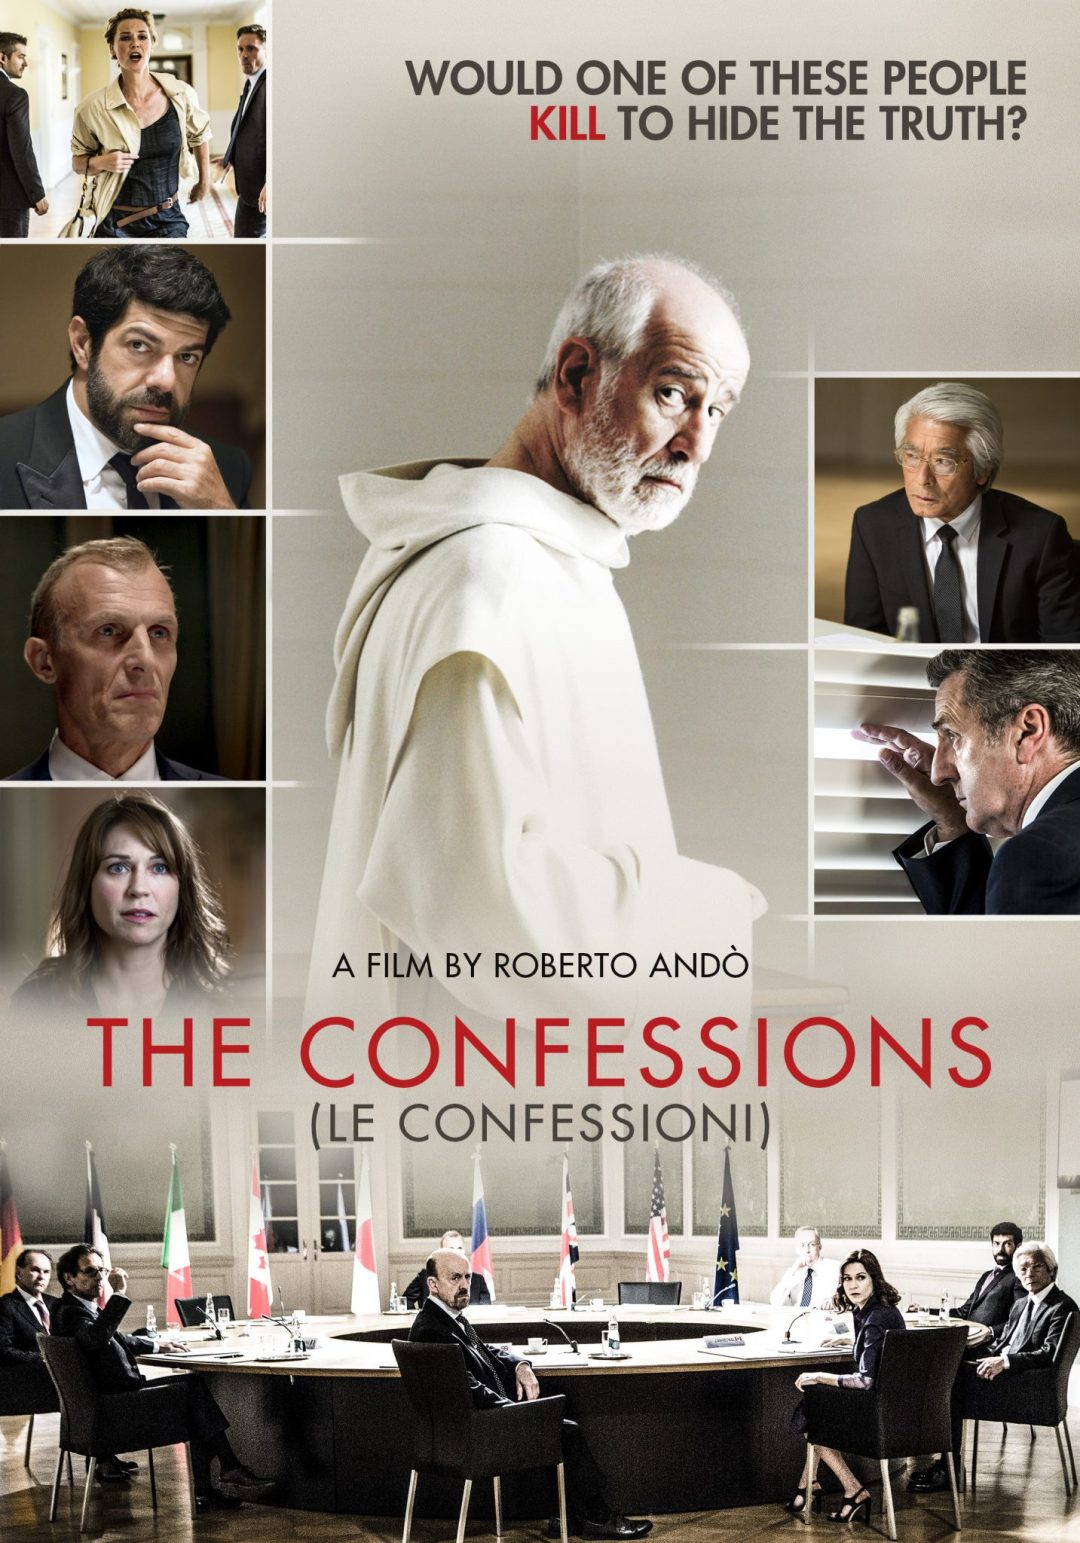 On VOD this September from Uncork'd Entertainment 'The Confessions' Starring Connie Nielsen